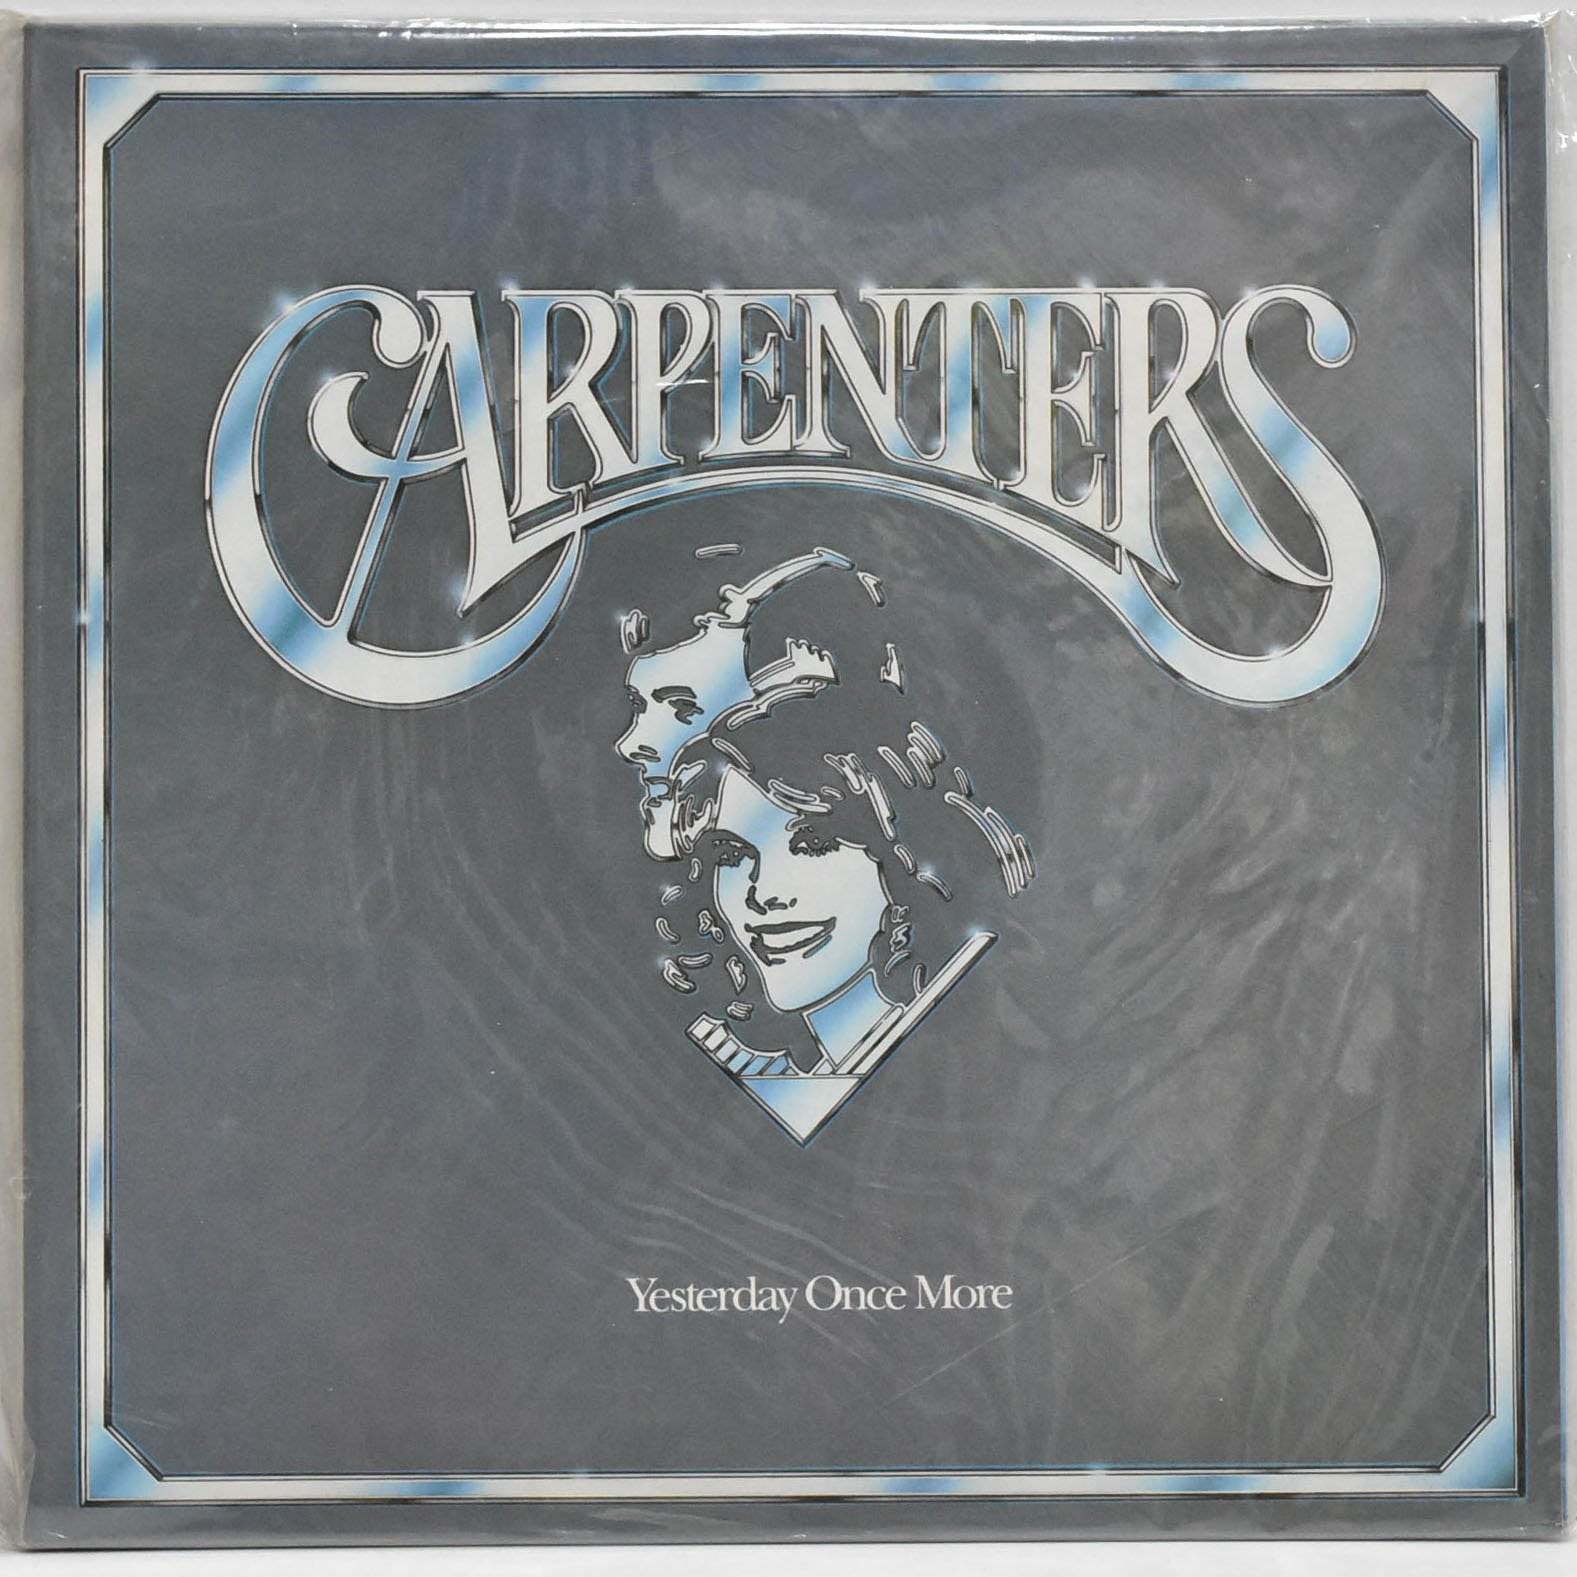 Carpenters Yesterday Once More 2X黑膠品項優 609900000534 再生工場YR20